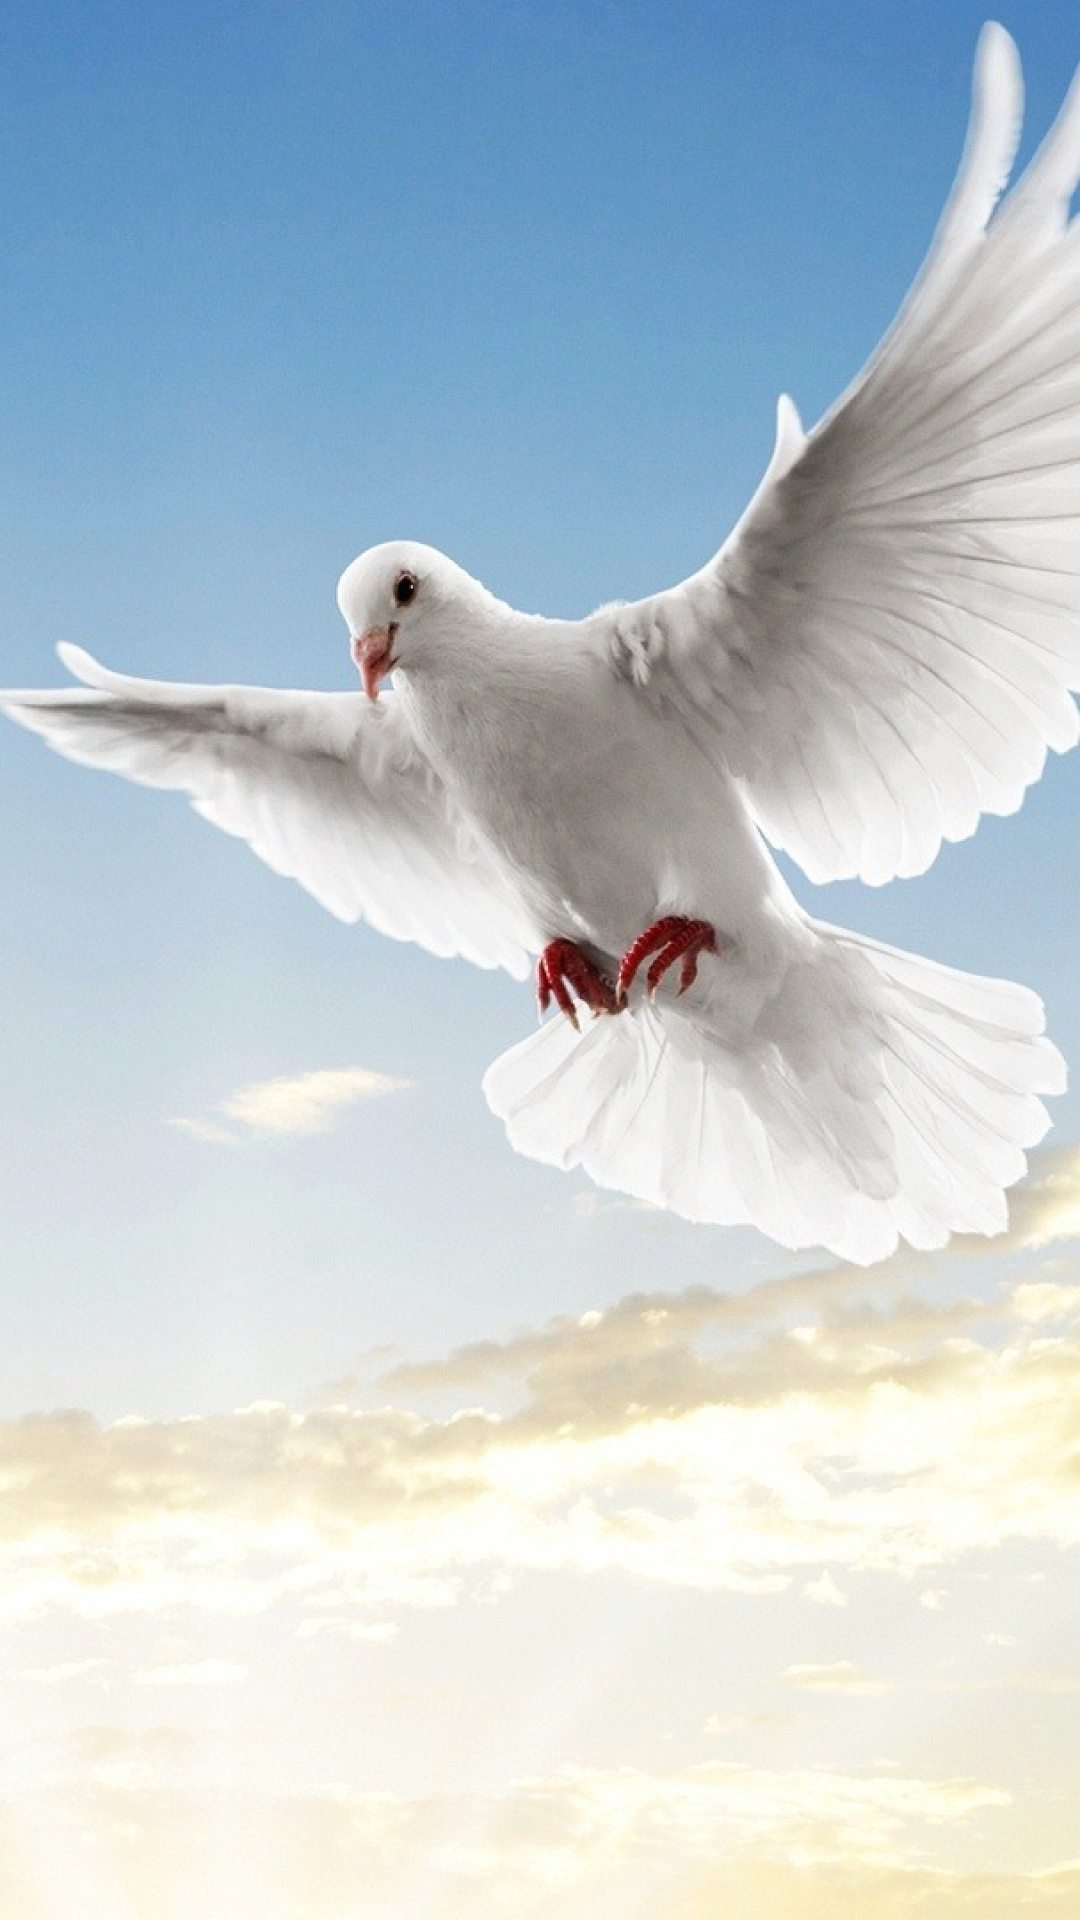 Captivating Animal White Dove Flying Under Blue Sky Widescreen